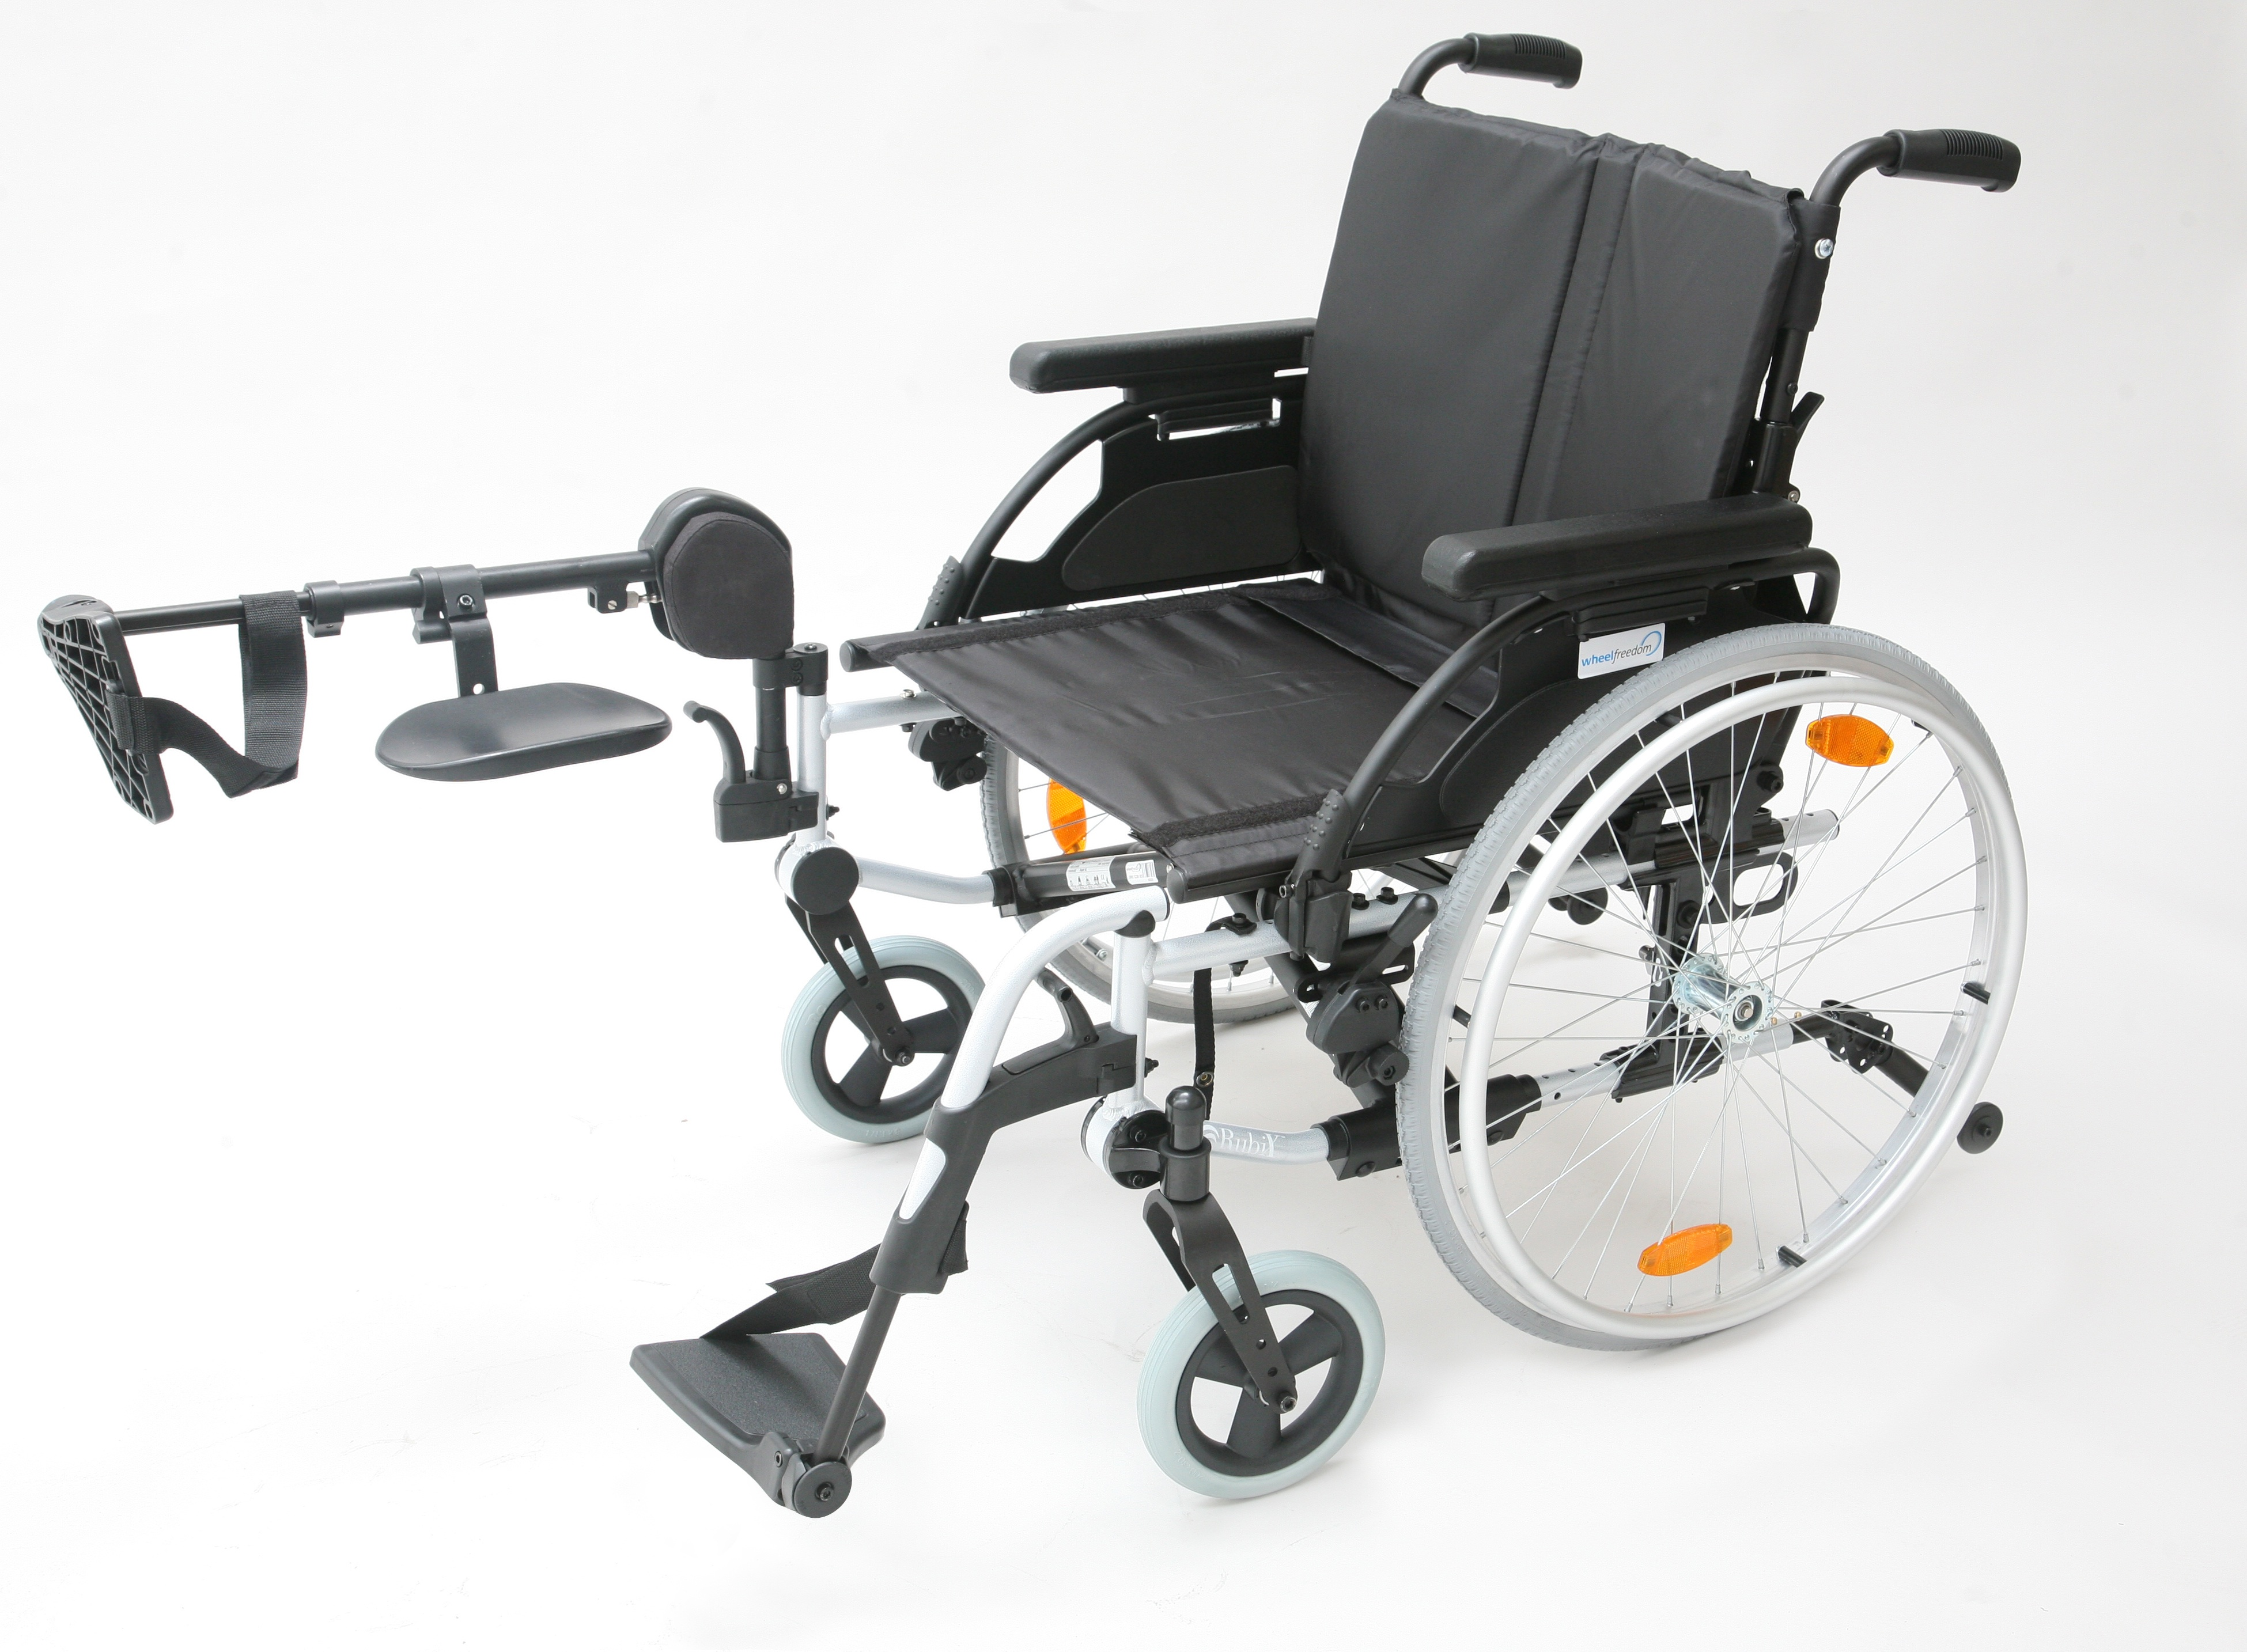 Manual Lift For Disabled : Manual wheelchair hire in sussex elevated leg rest